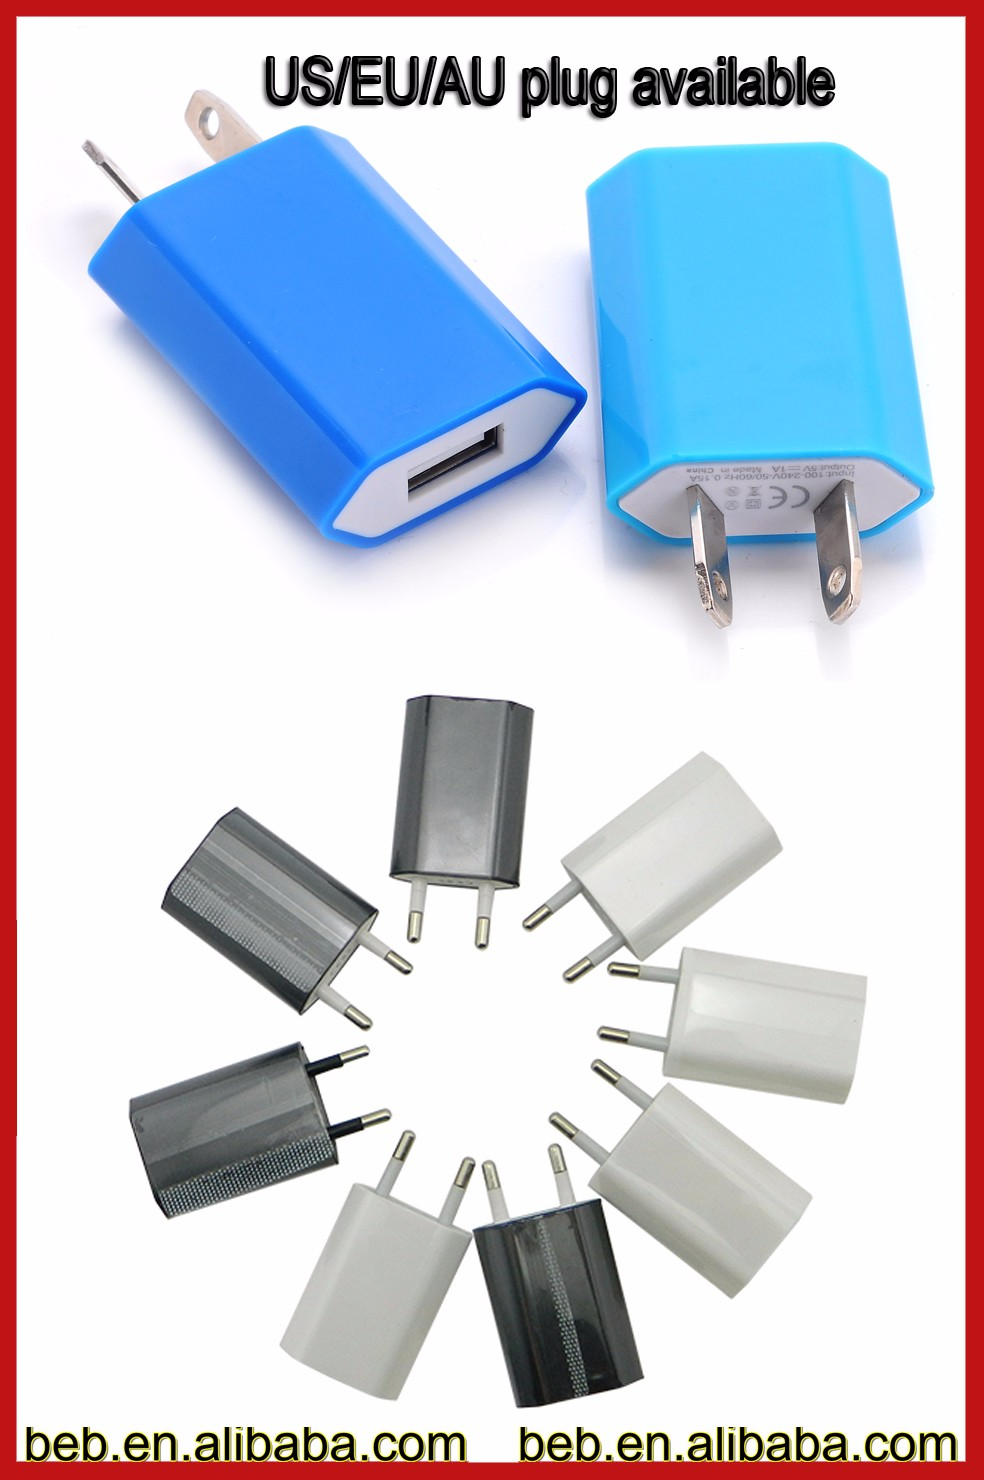 Promotional 5v 1.2a micro usb wall charger for iphone 6s plus